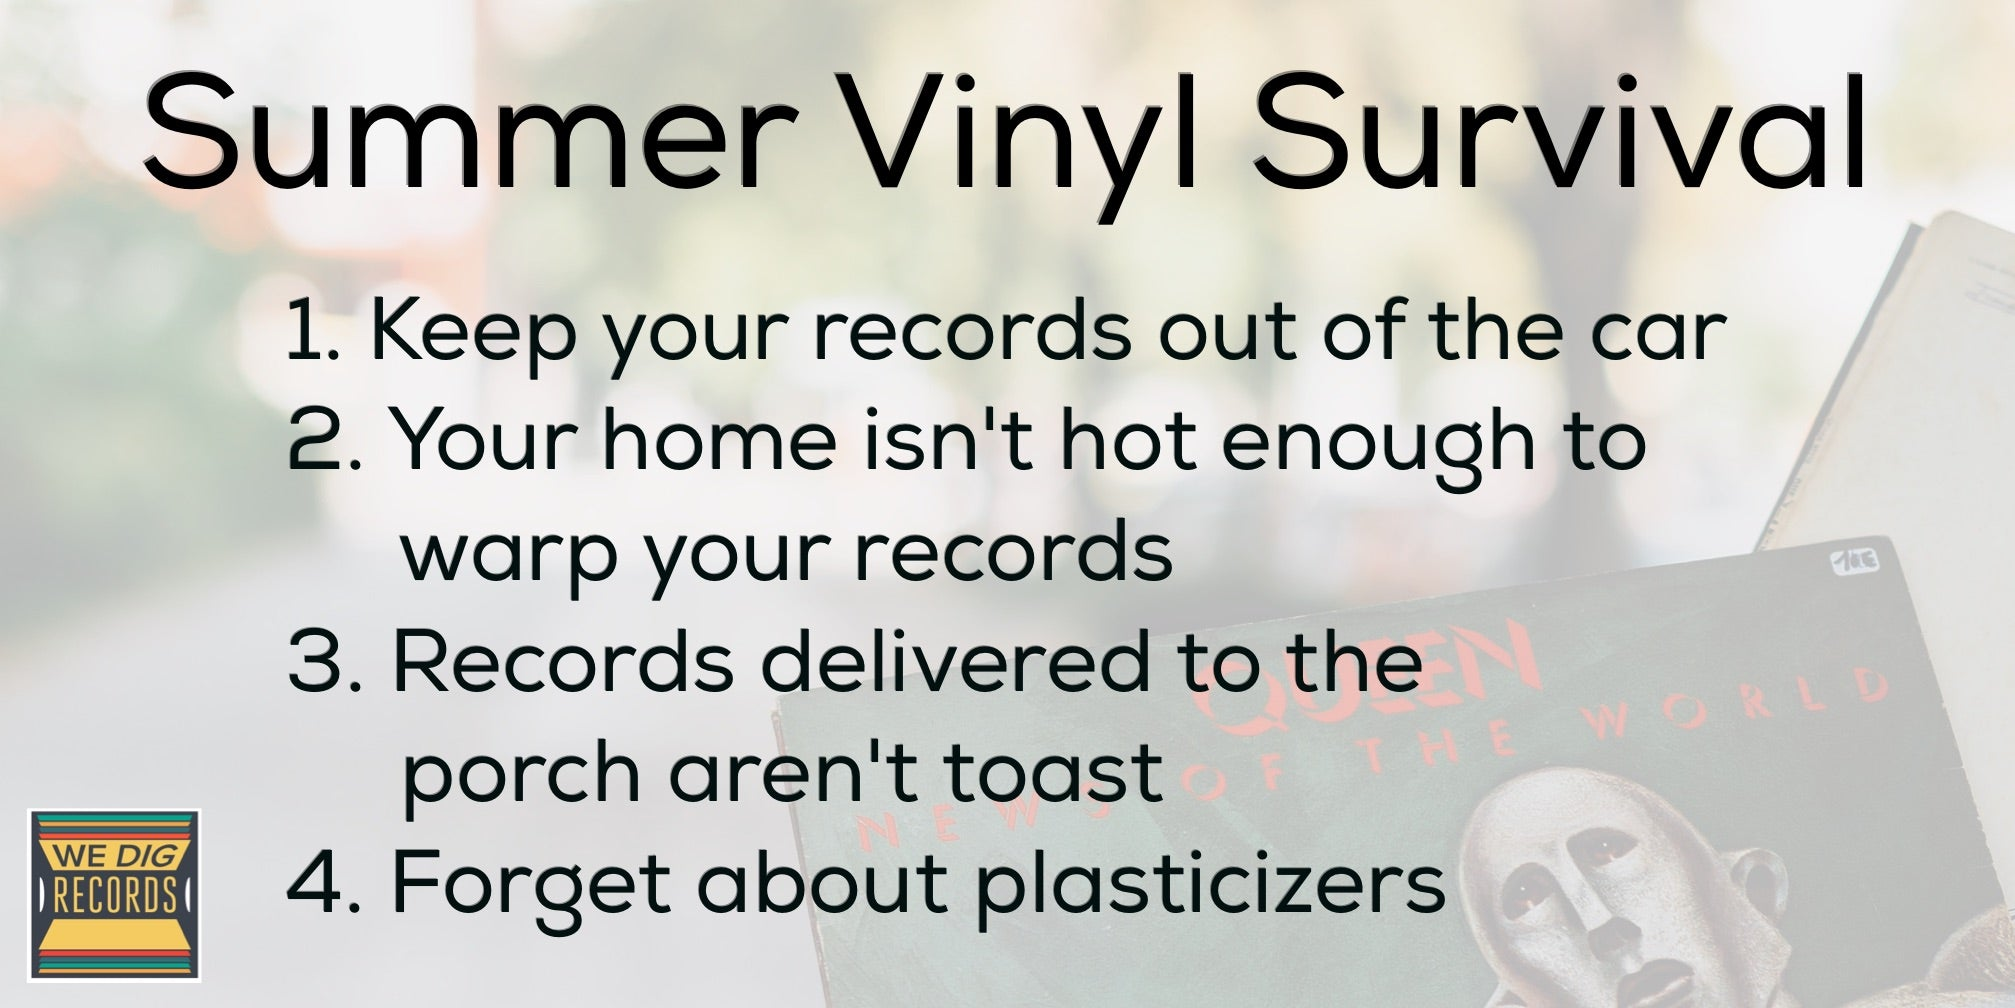 Summer Vinyl Survival Guide